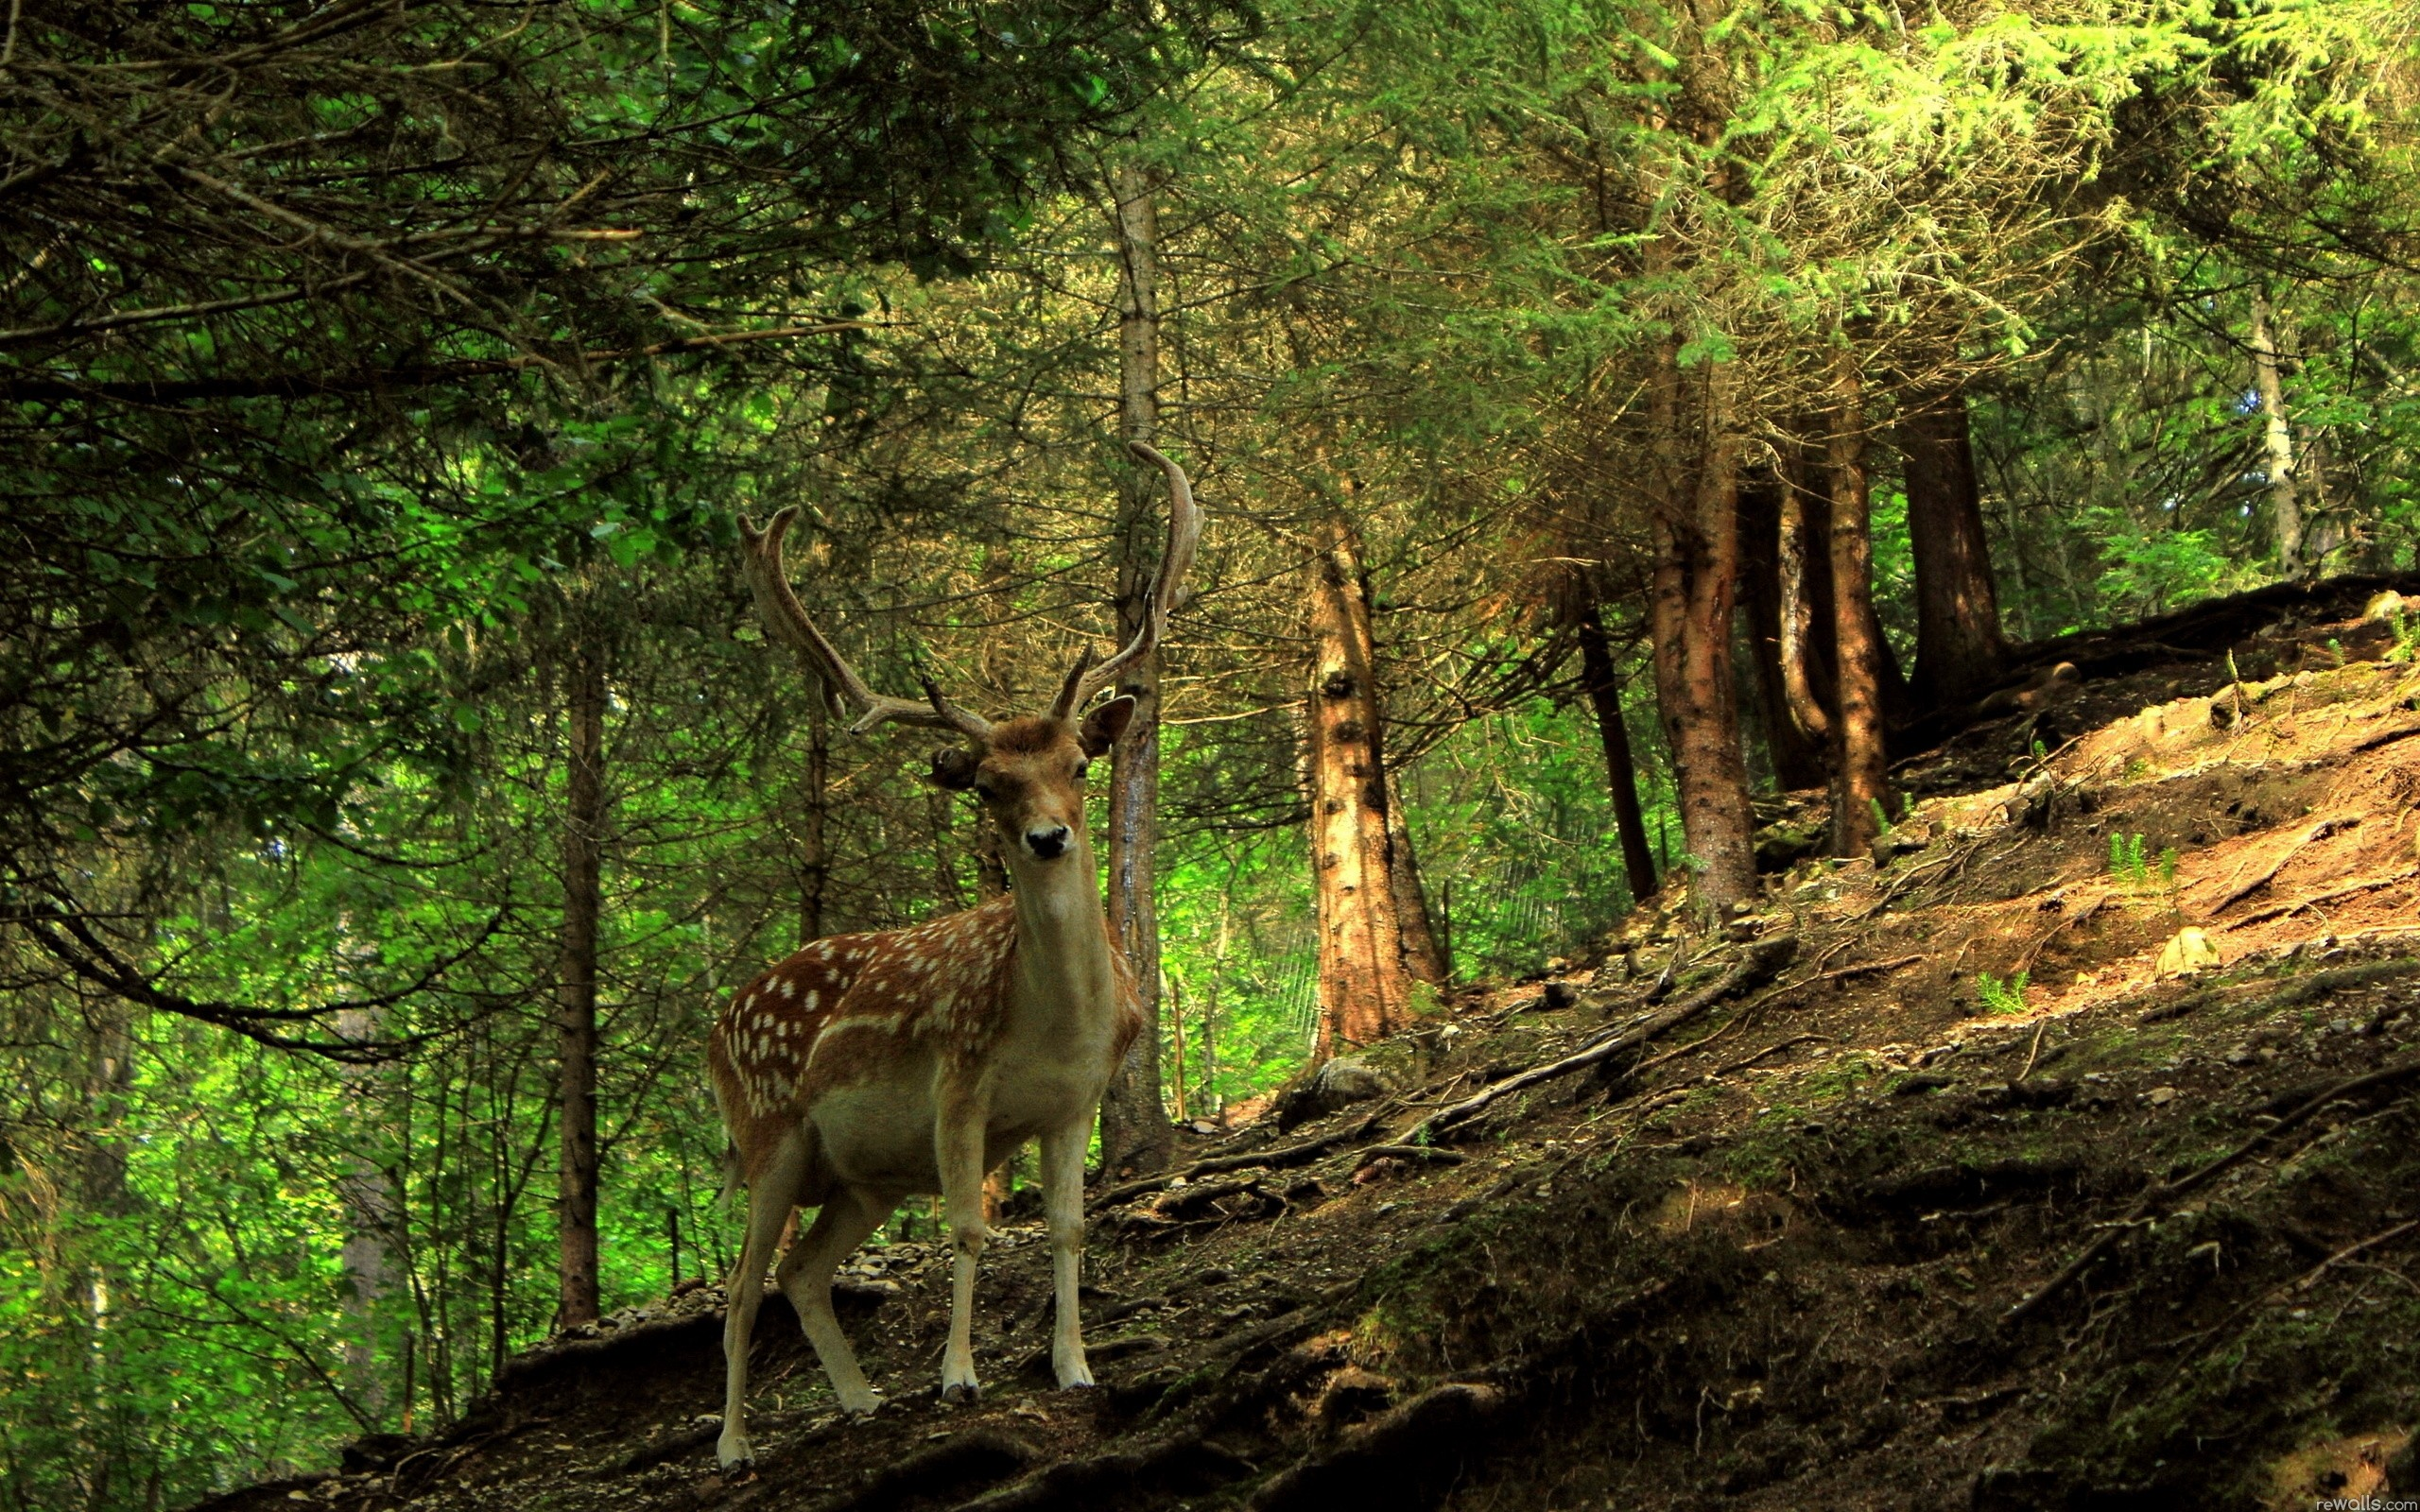 Forest Animal Wallpaper Wallpapersafari